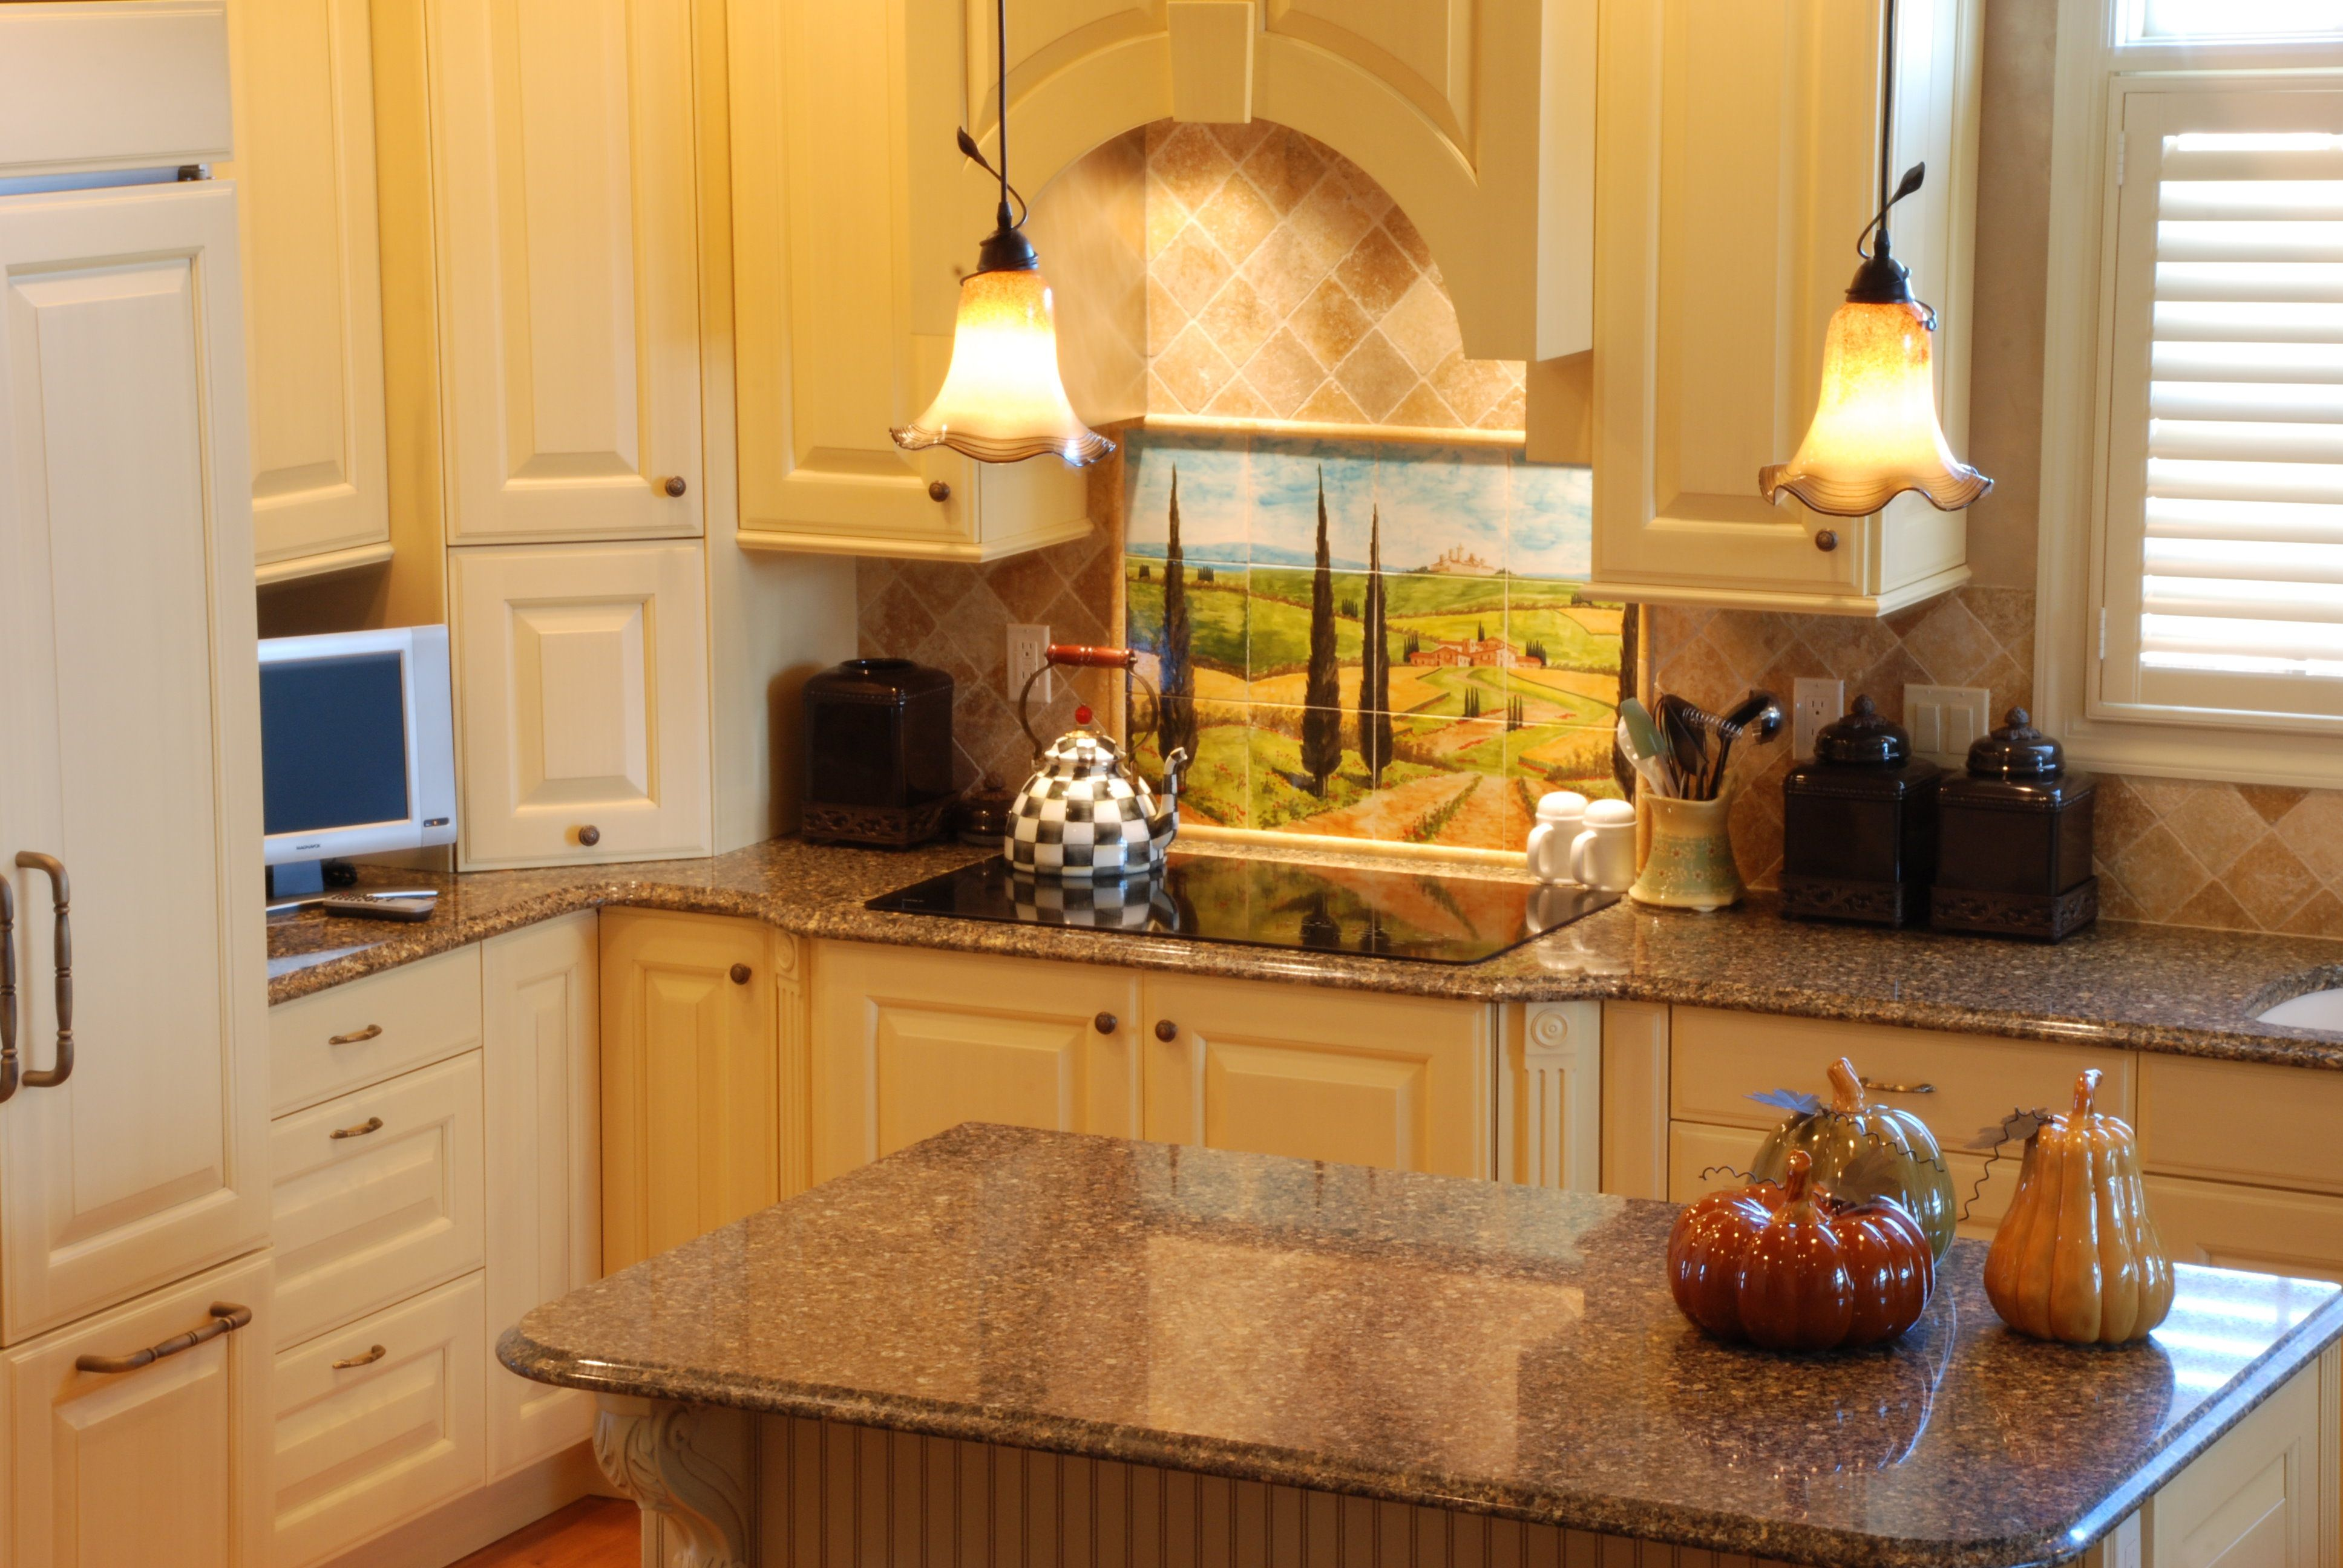 Laminate Countertops Pittsburgh Quotblack Canyon Quot Silestone With Light Cabinets Lake House